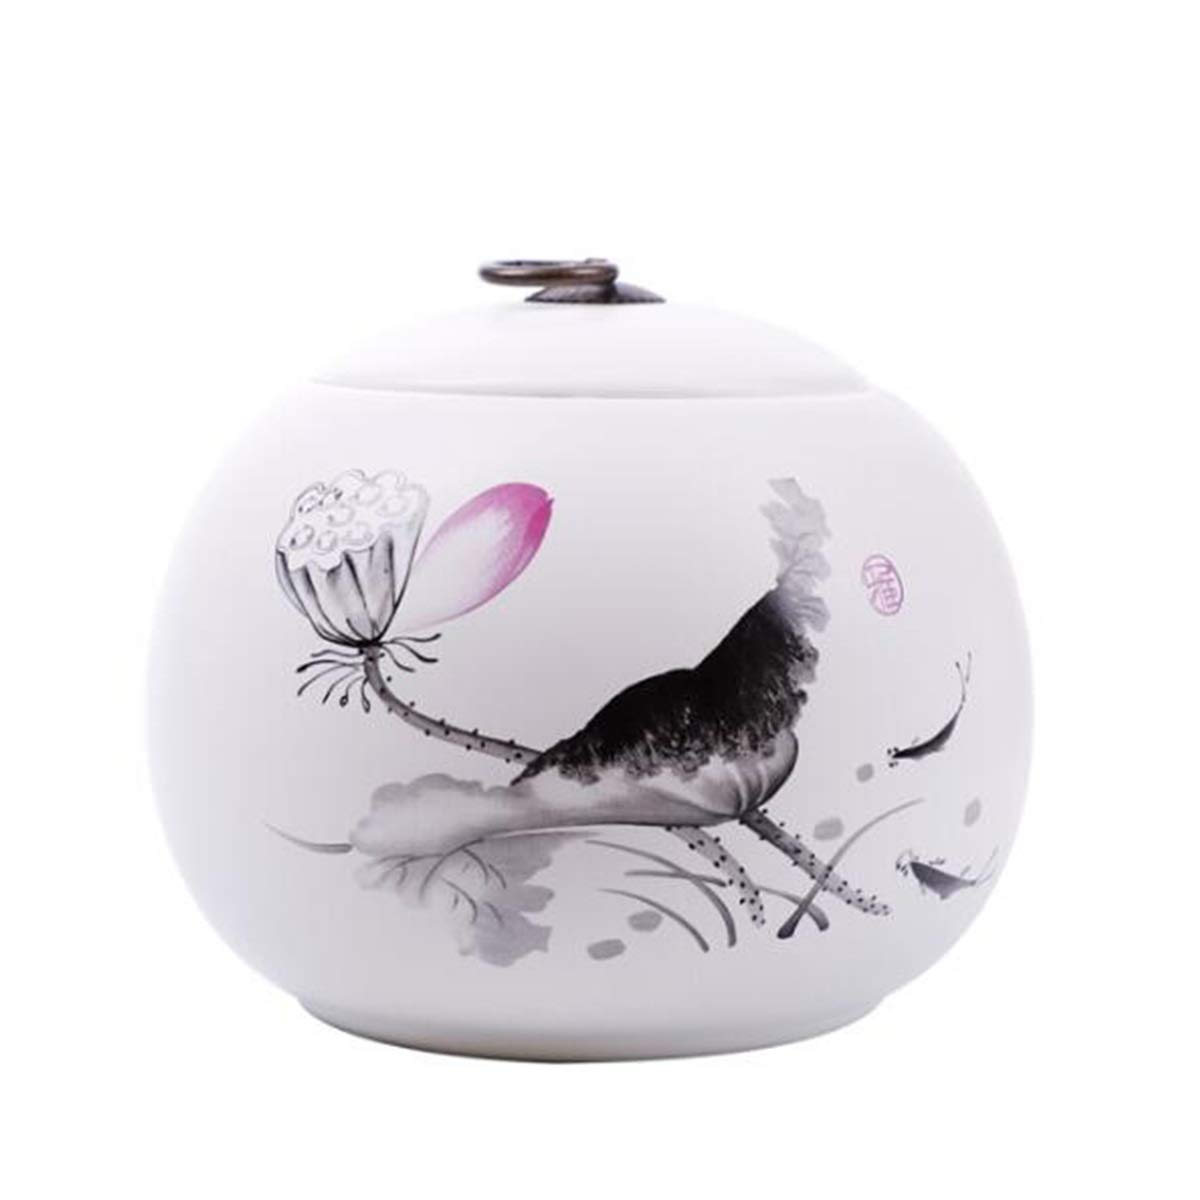 C 17.513.5cm C 17.513.5cm Hengtongtongxun Pet Urn,Cremation Urns for Pets,Functional Urn,Ceramic Sealed,Keepsake Box for Dogs and Cats,17.5  13.5cm Soul Place (Size   17.5  13.5cm, Style   C)